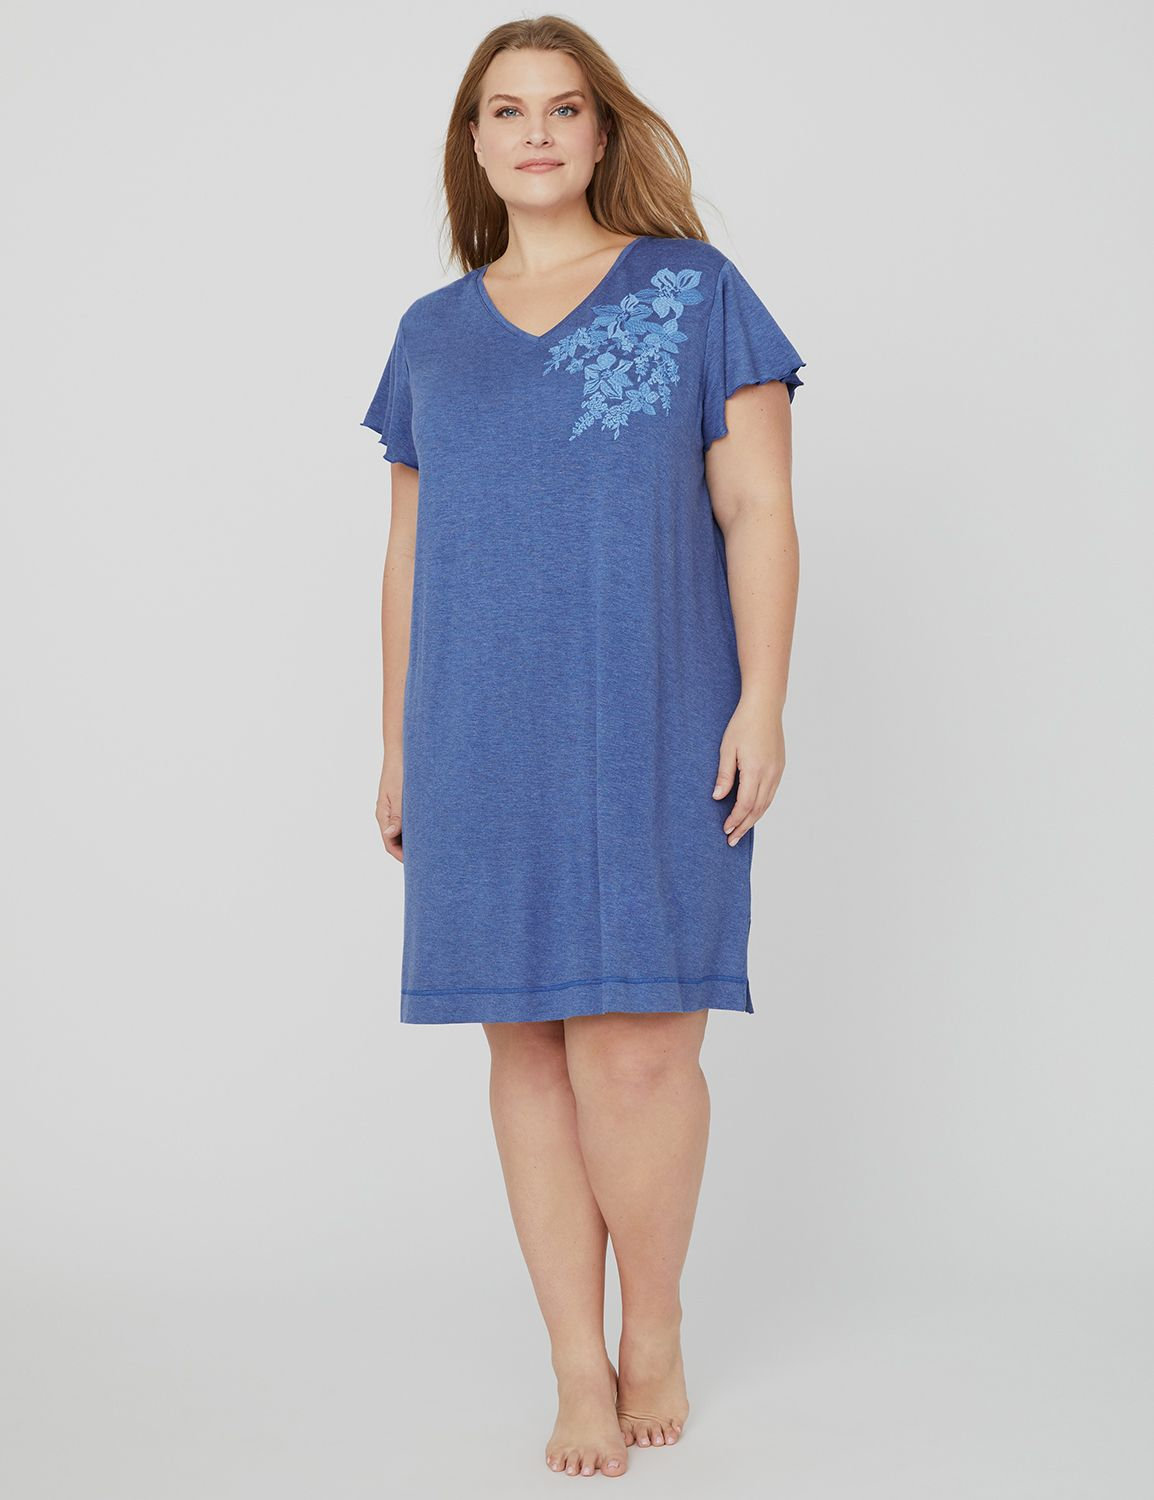 Embroidered Terry Sleep Tee 1088486- Embroidered SS f/t sleepsh MP-300096239